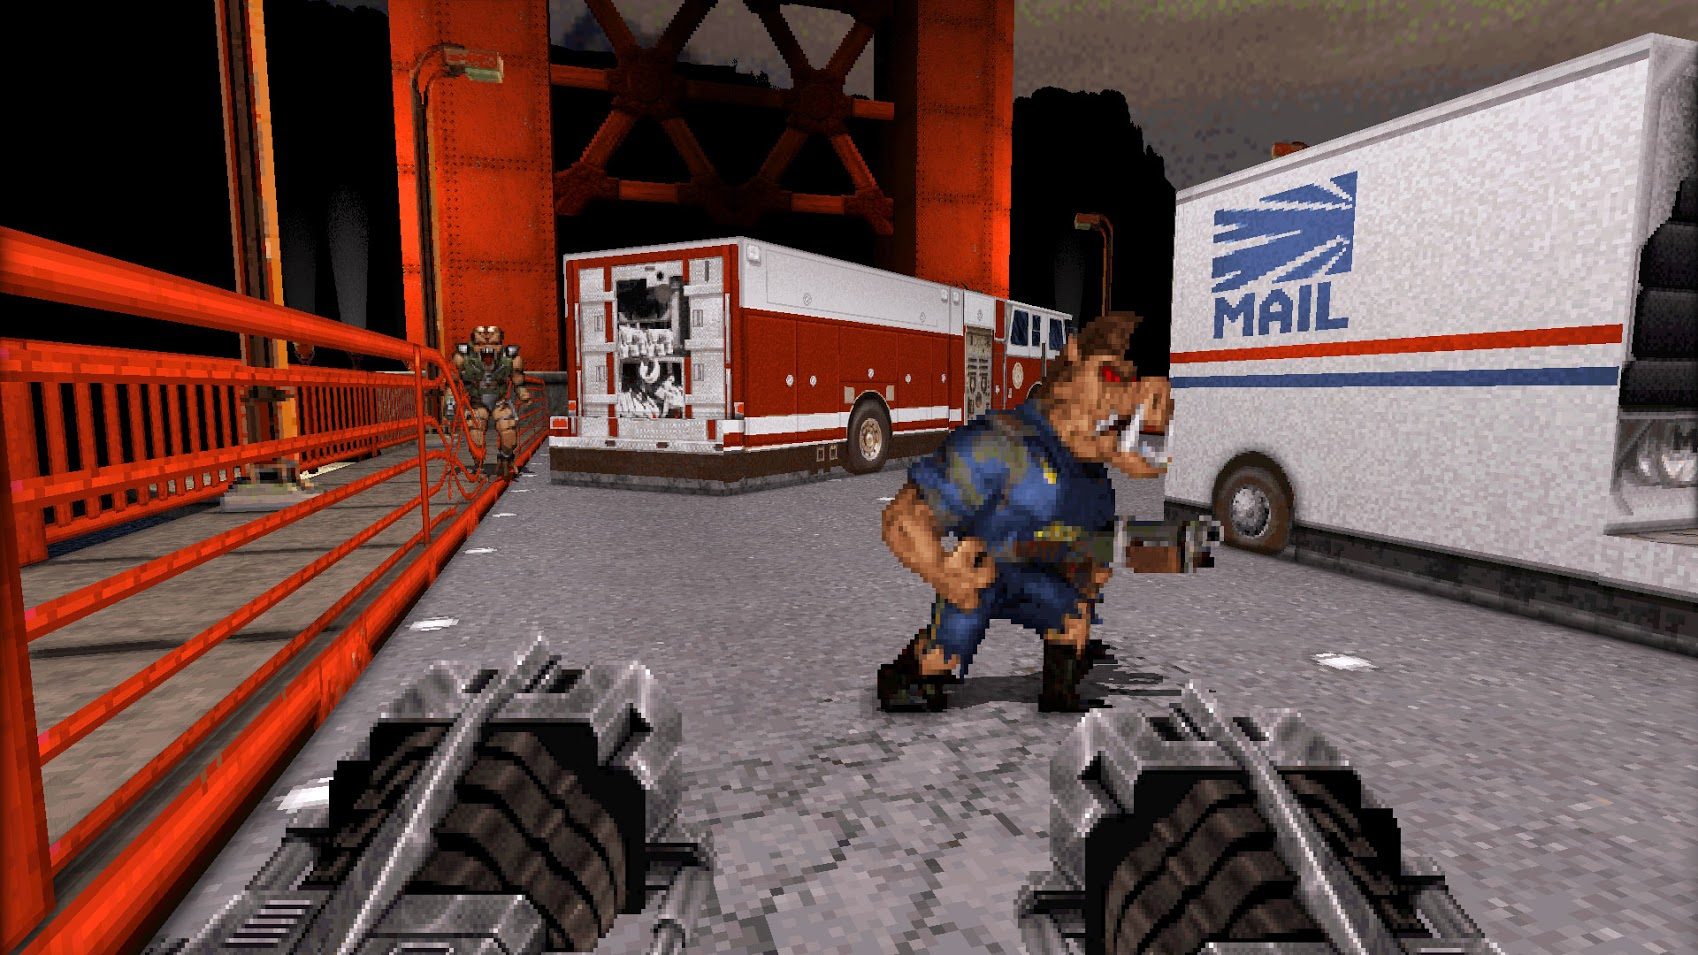 Duke-Nukem-3D-20th-Anniversary-World-Tour_2016_09-02-16_006